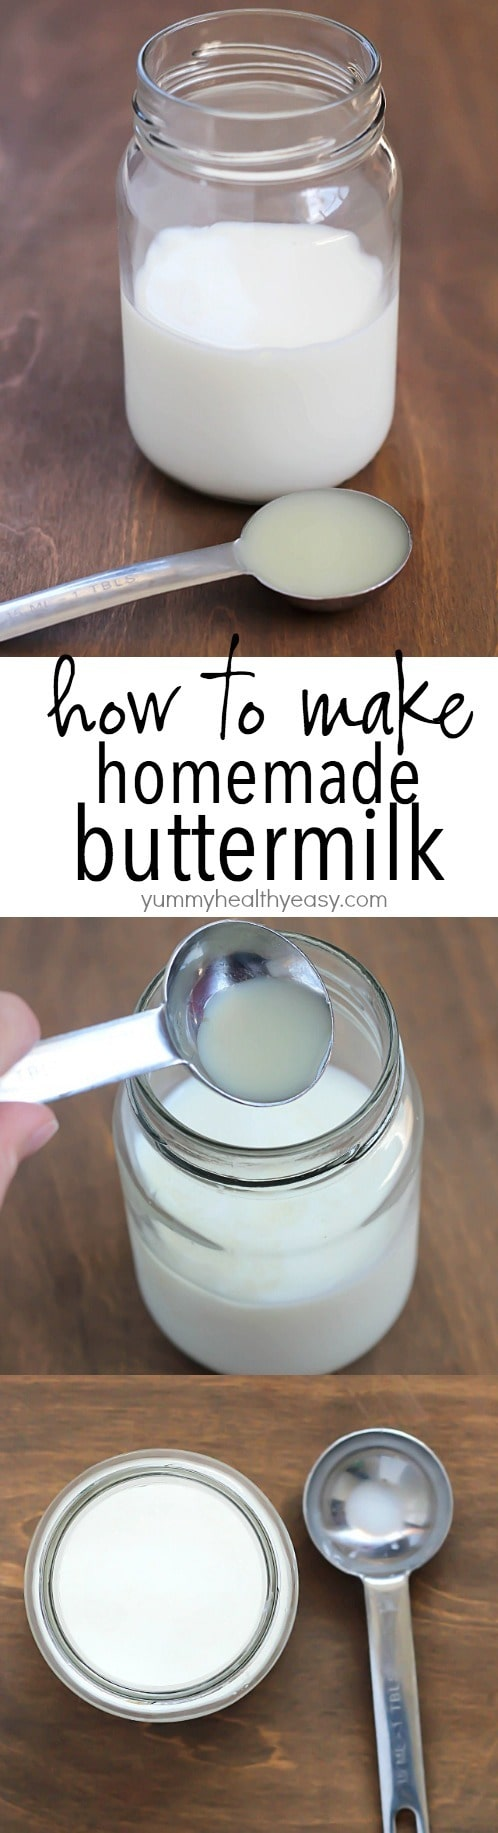 Diy Kitchen Sweepstakes Kitchen Hack How To Make Homemade Buttermilk Yummy Healthy Easy